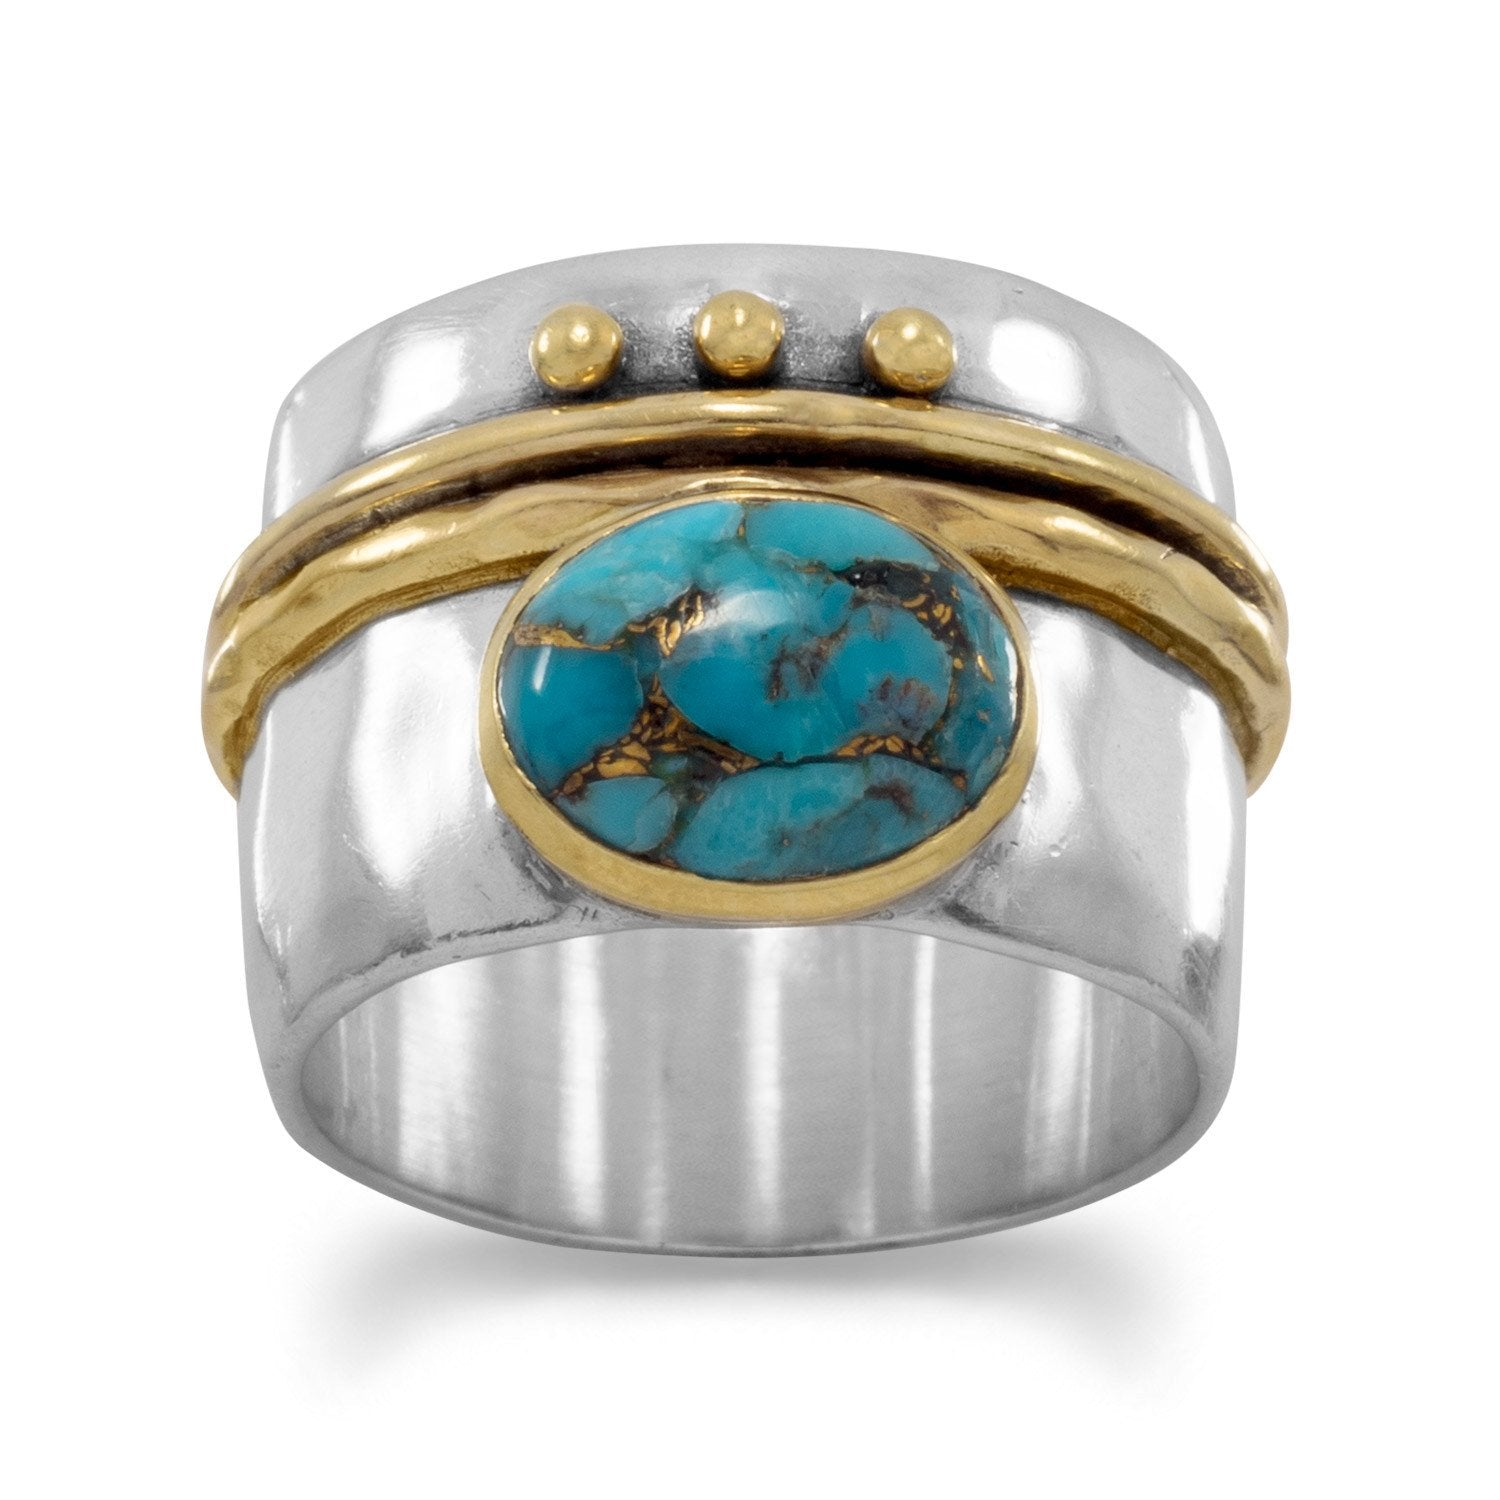 Two Tone Stabilized Turquoise Ring - Rocky Mt. Outlet Inc - Shop & Save 24/7